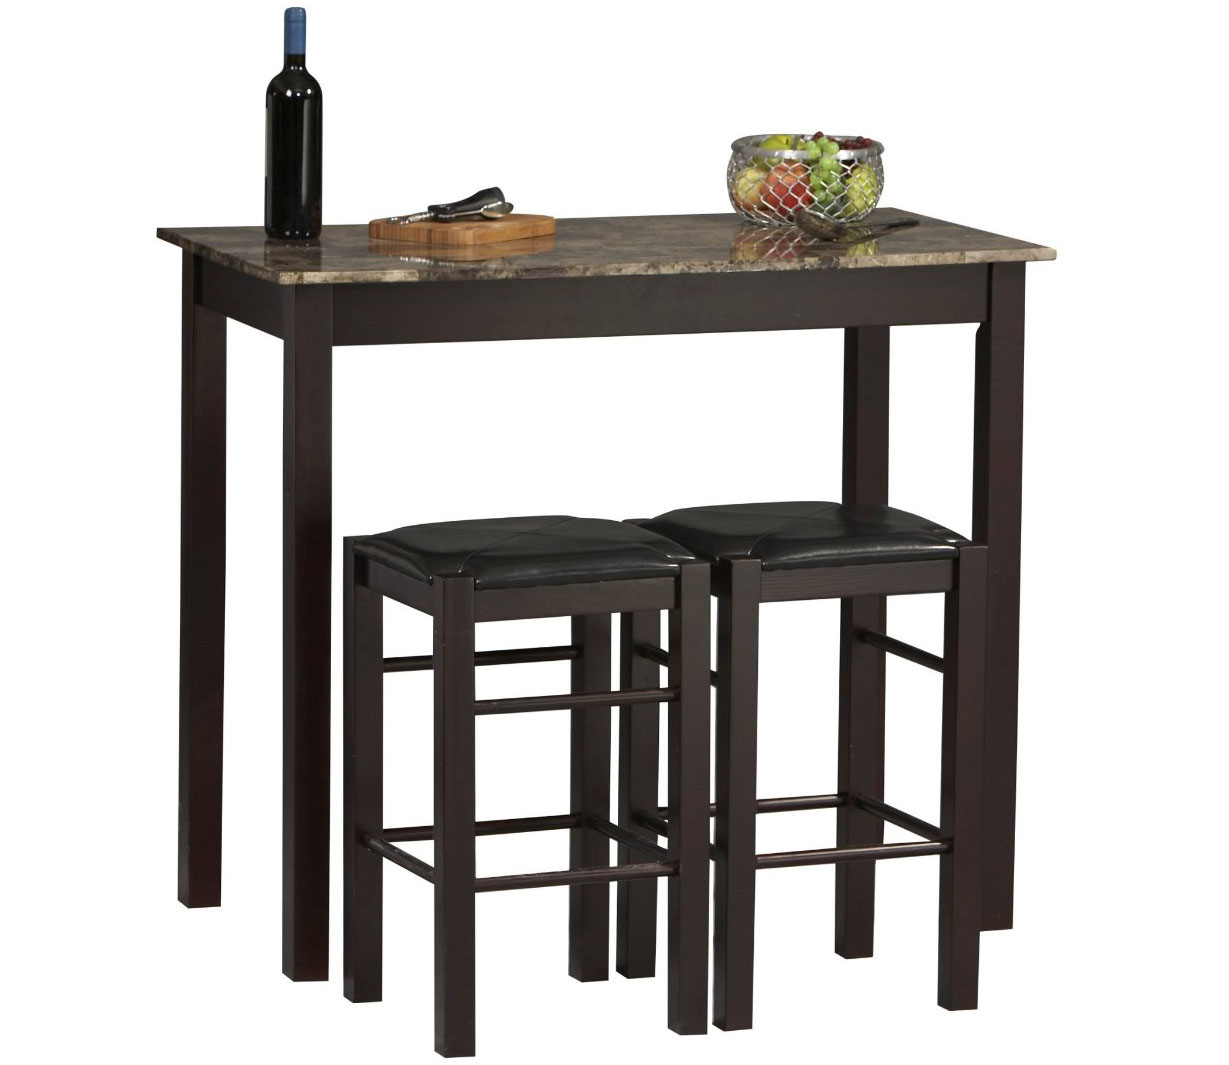 kitchen table sets rectangle kitchen table Rectangular Bar Table Set with Stools